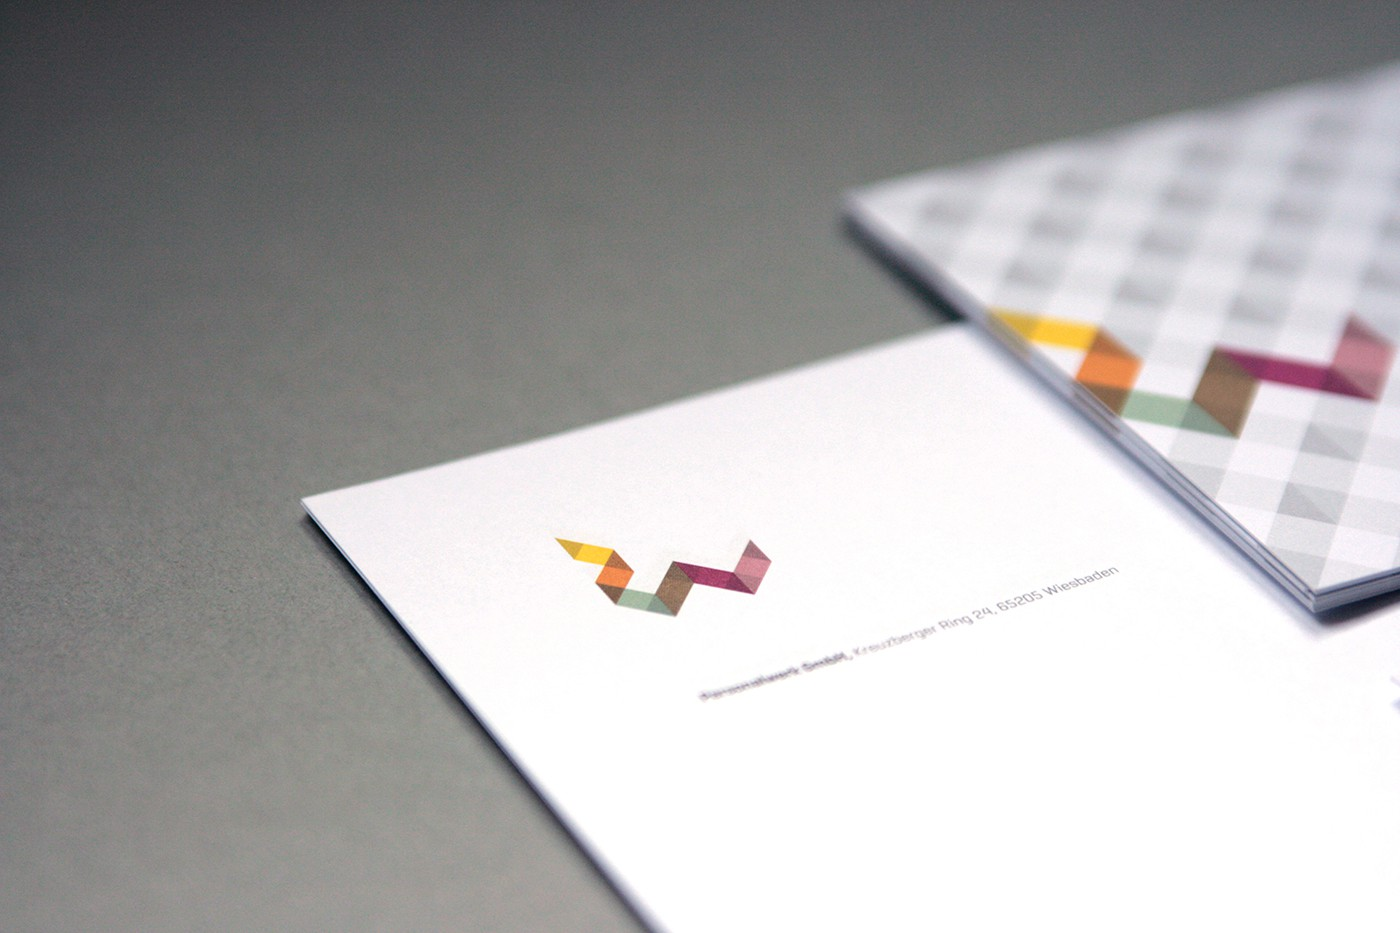 personalwerk brand design by upstruct